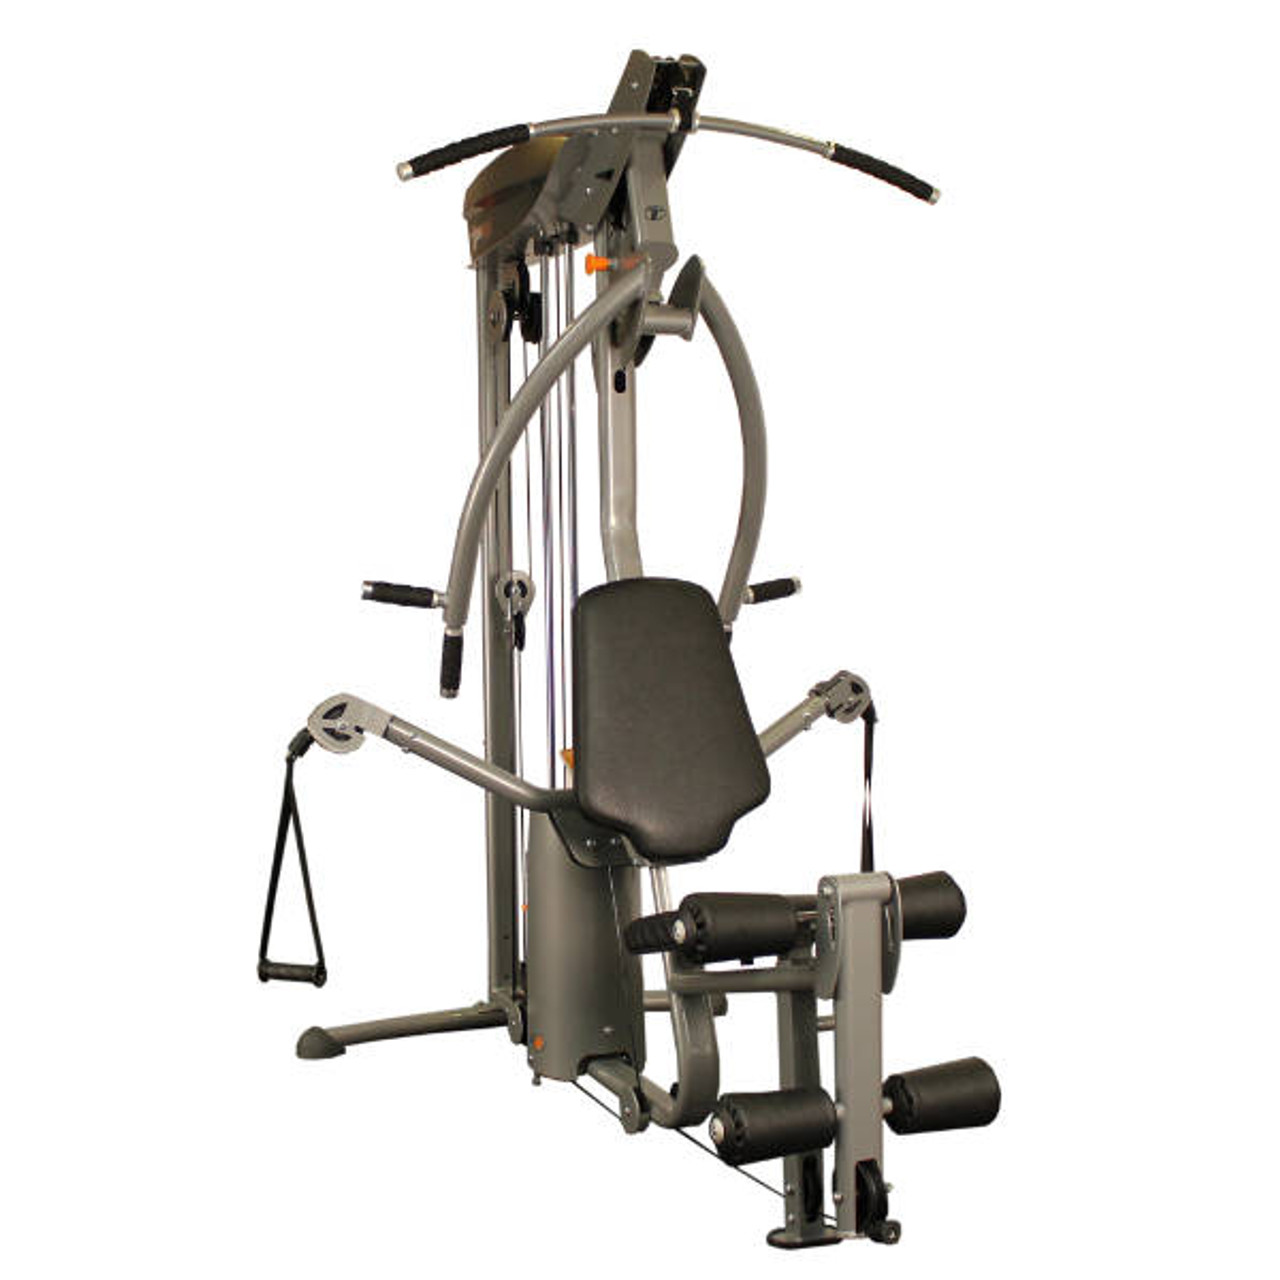 Torque Fitness H2 home gym